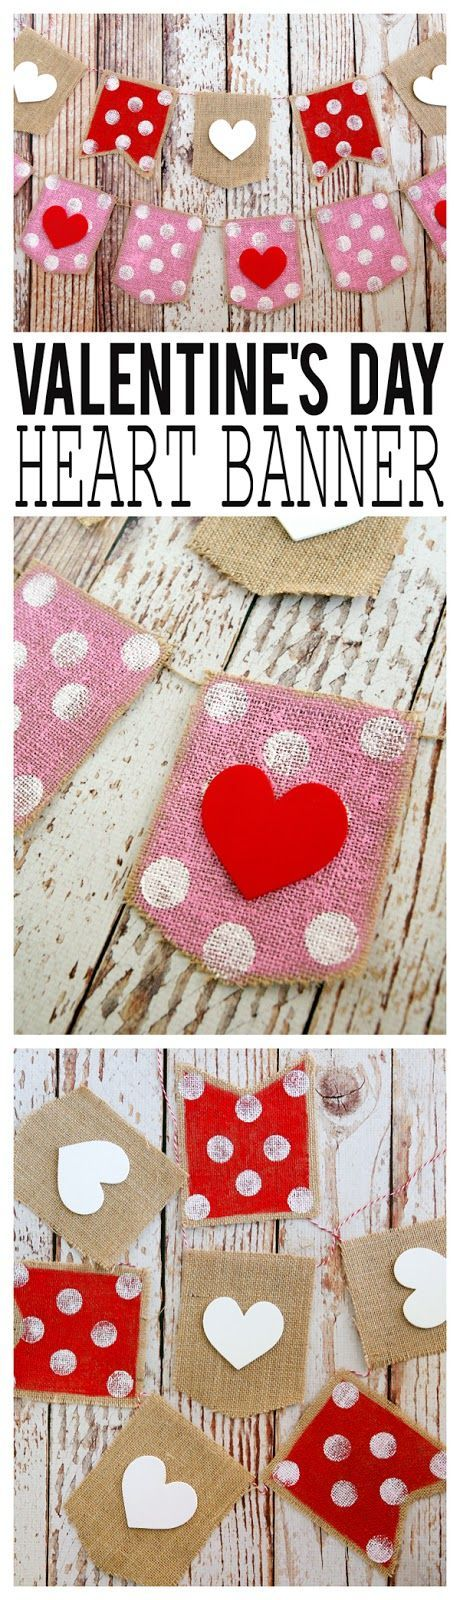 38 best Valentines Day Activities for Kids images on Pinterest ...